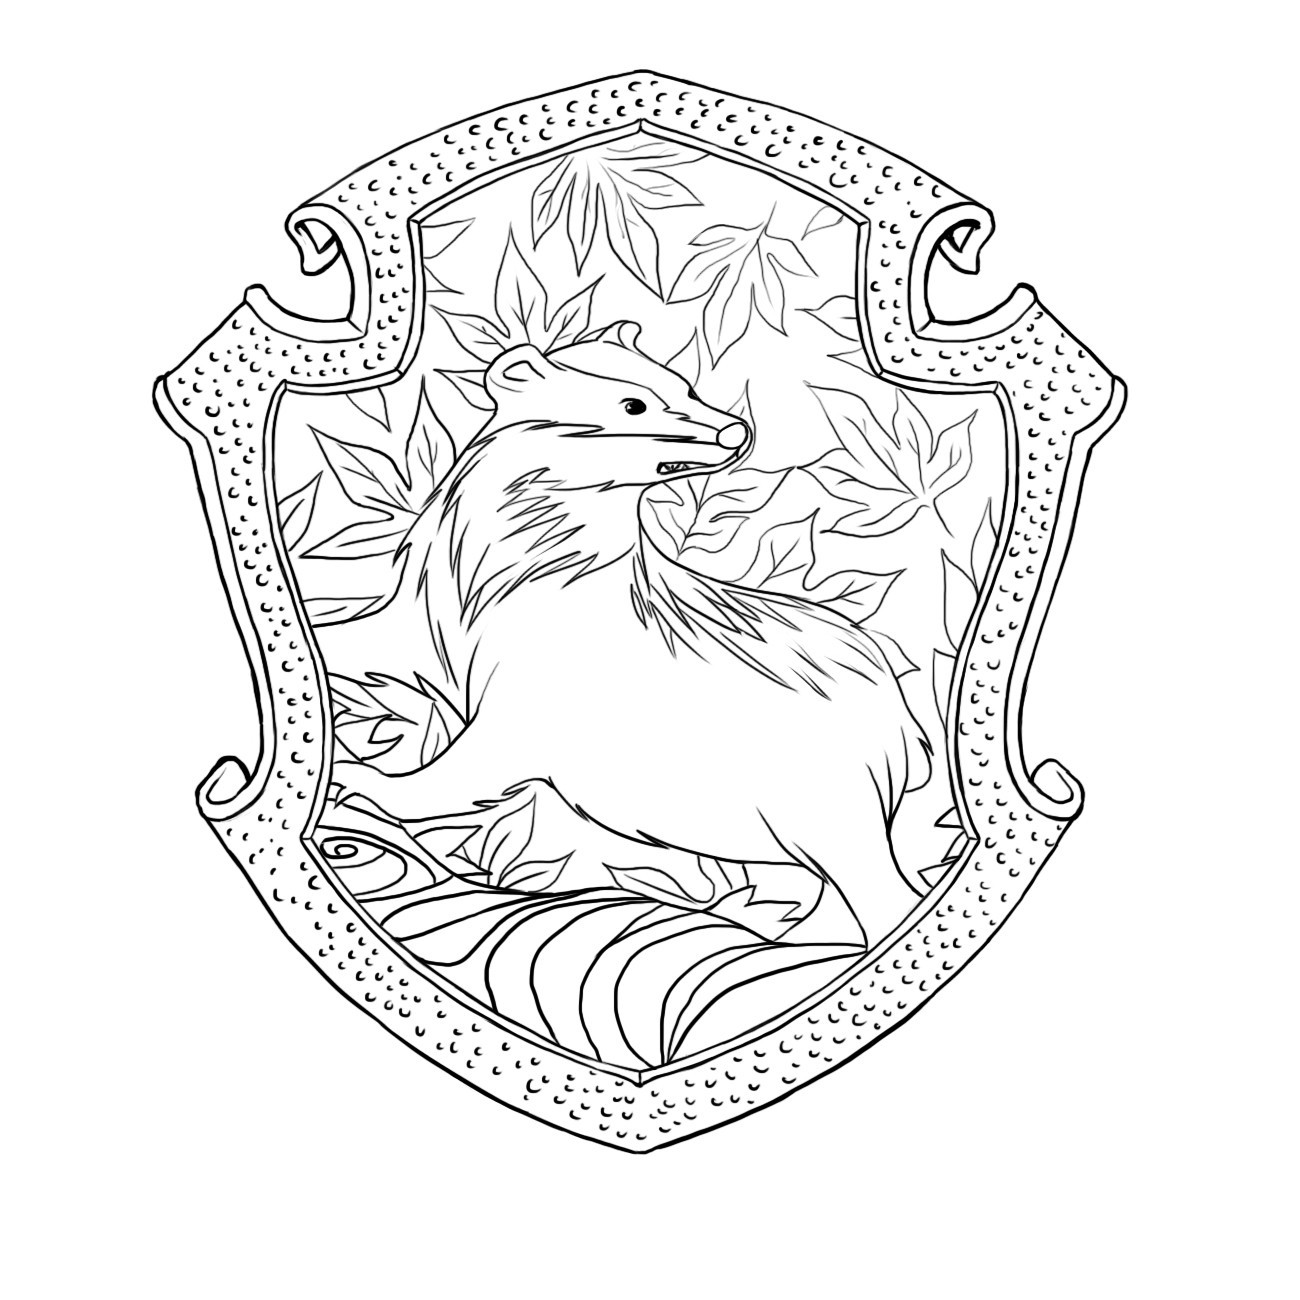 1300x1300 Harry Potter Coloring Pages For Kids Beautiful Superb Slytherin